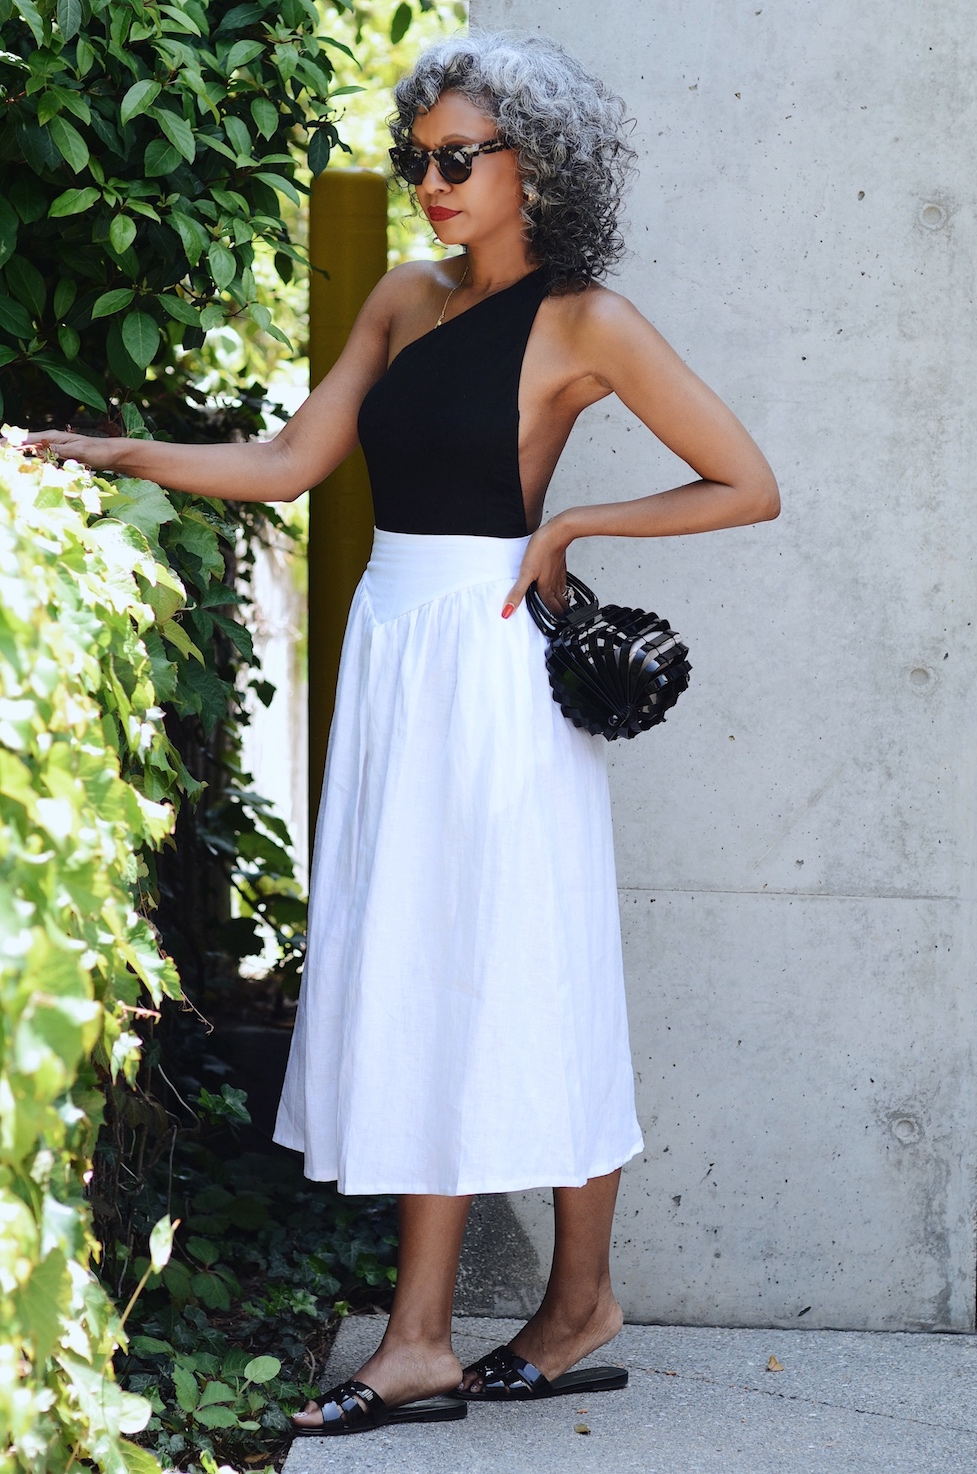 Posse sustainable fashion high-waisted white linen skirt  // A Week Of Sophisticated Slow Fashion Outfits With Tennille Murphy From The Tennille Life on The Good Trade